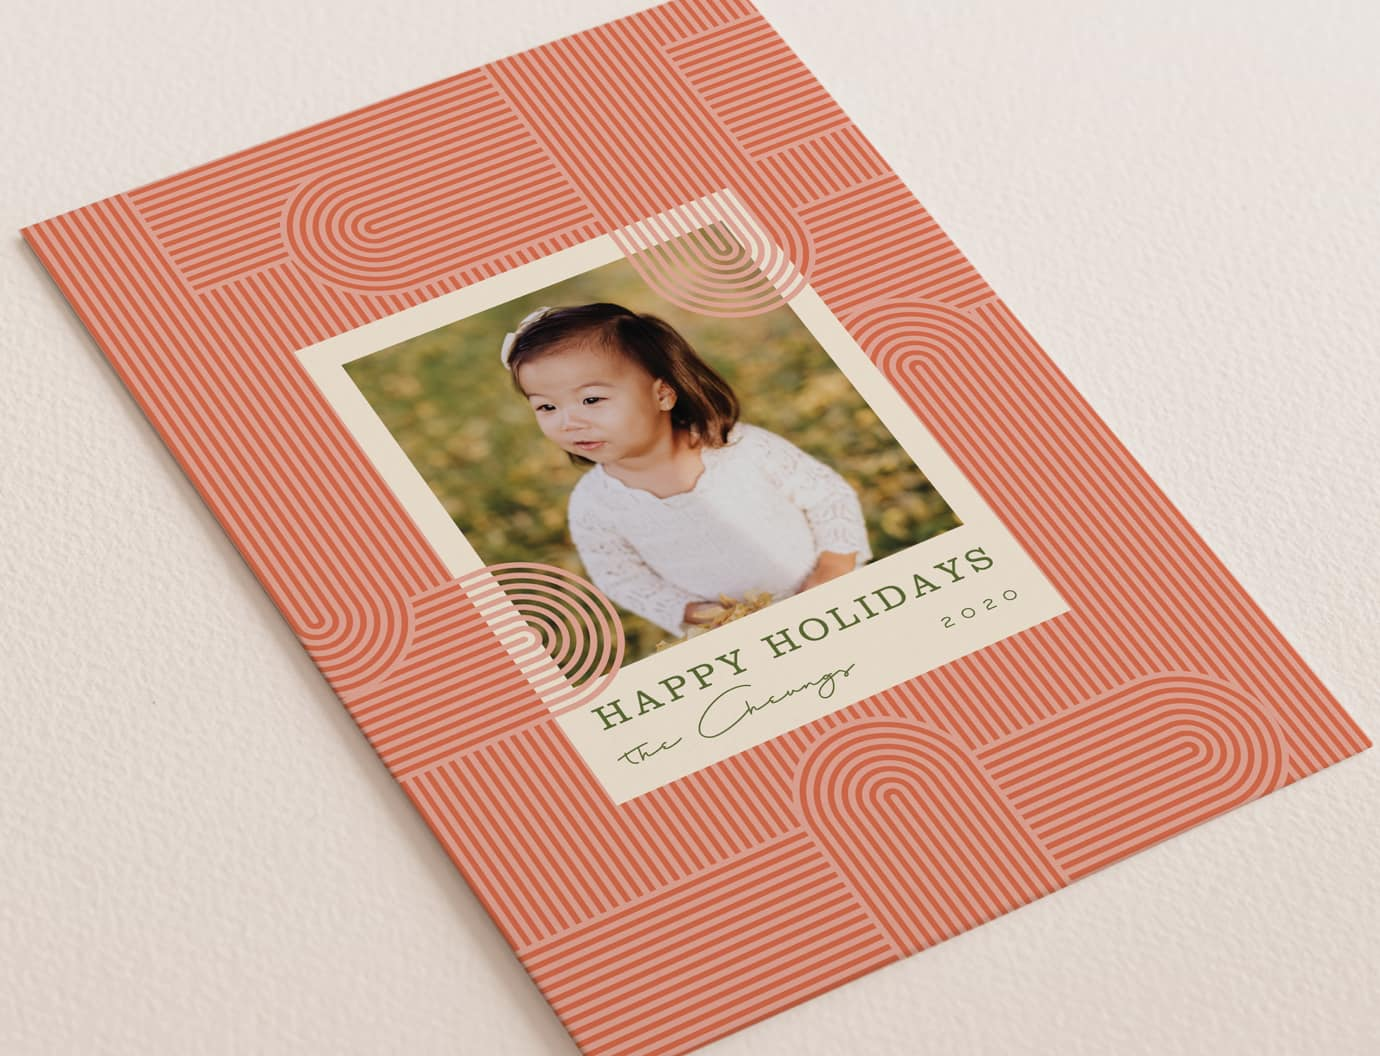 Deco lines holiday card trend